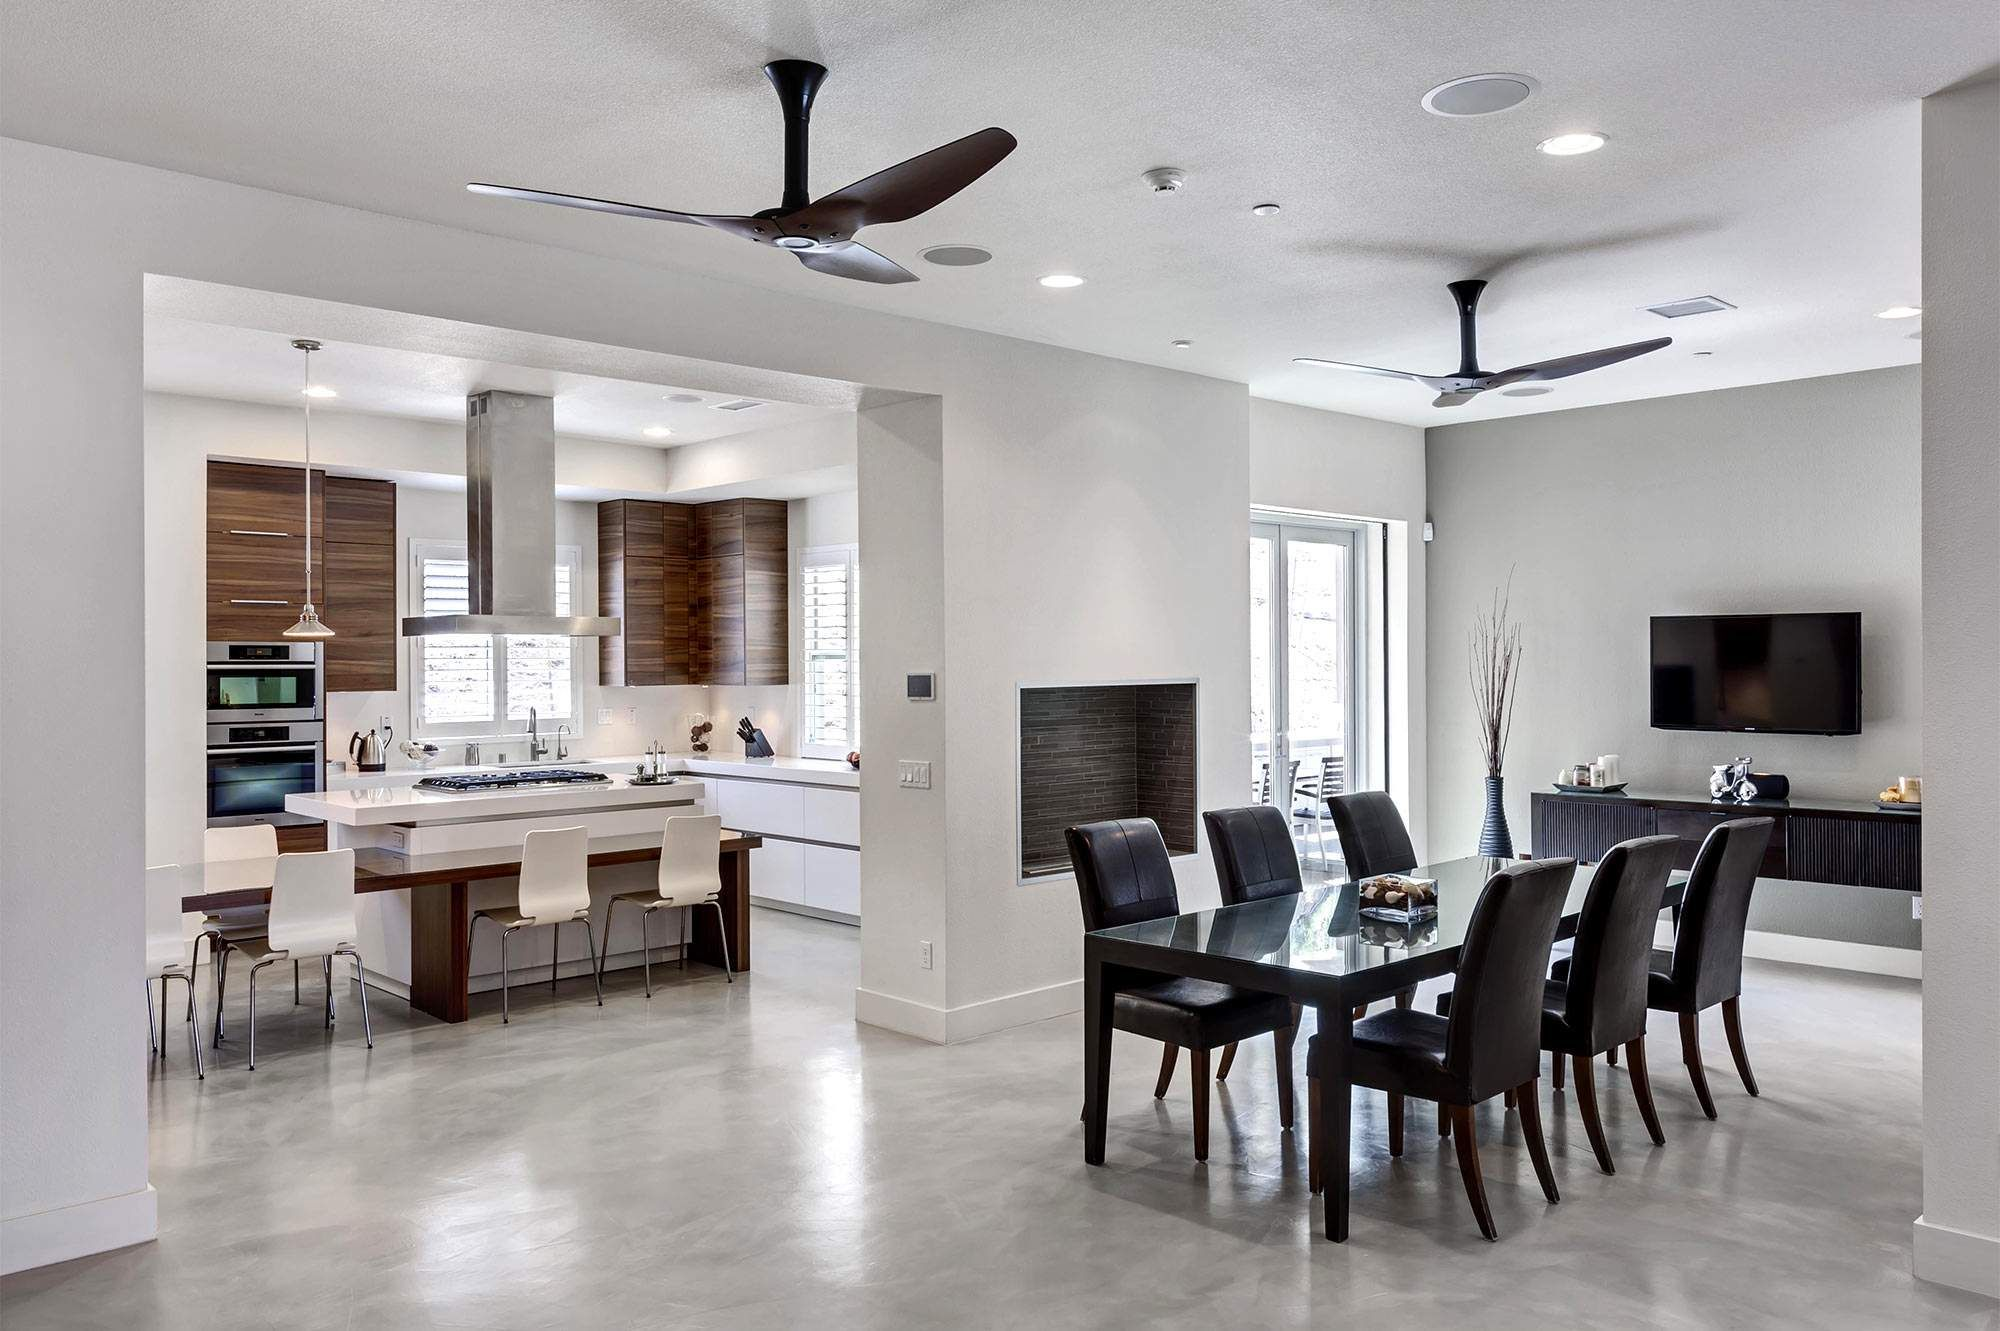 Furniture: Traditional Ceiling Fans For Kitchen With Light Varnished ...